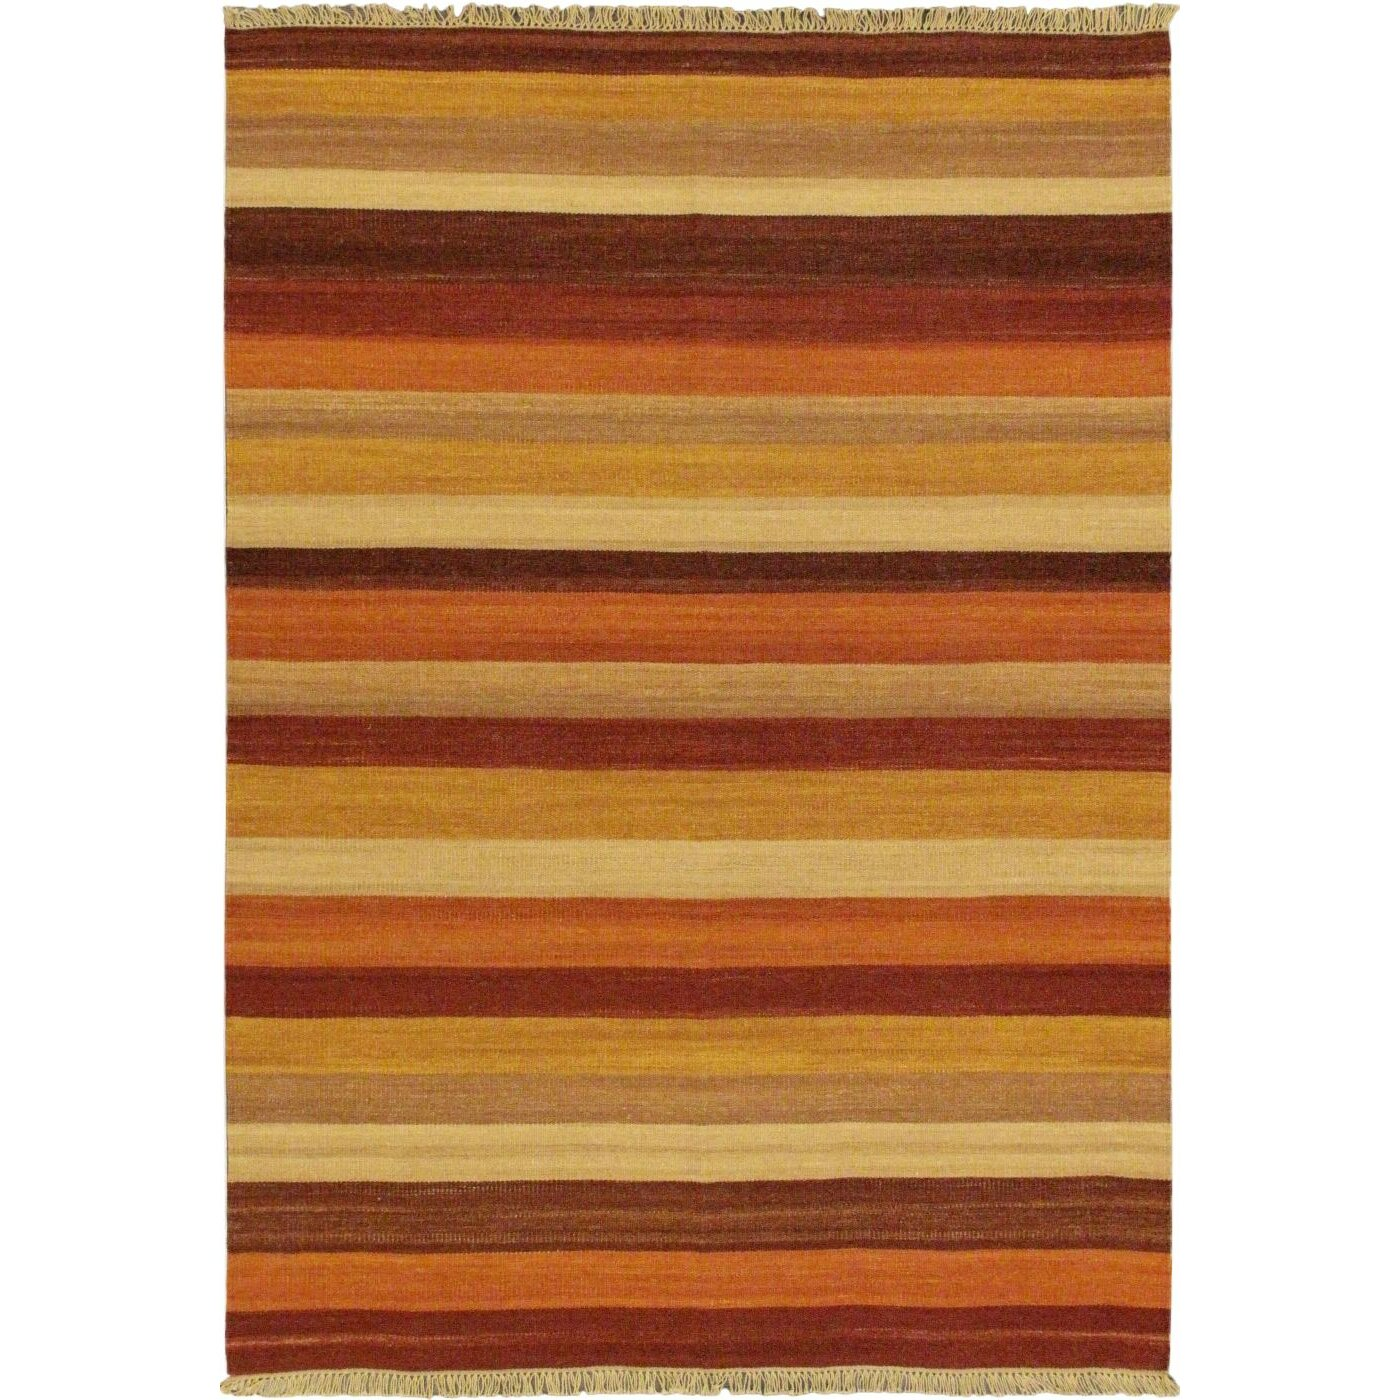 Ecarpetgallery fiesta dark red striped area rug wayfair for Red and white striped area rug